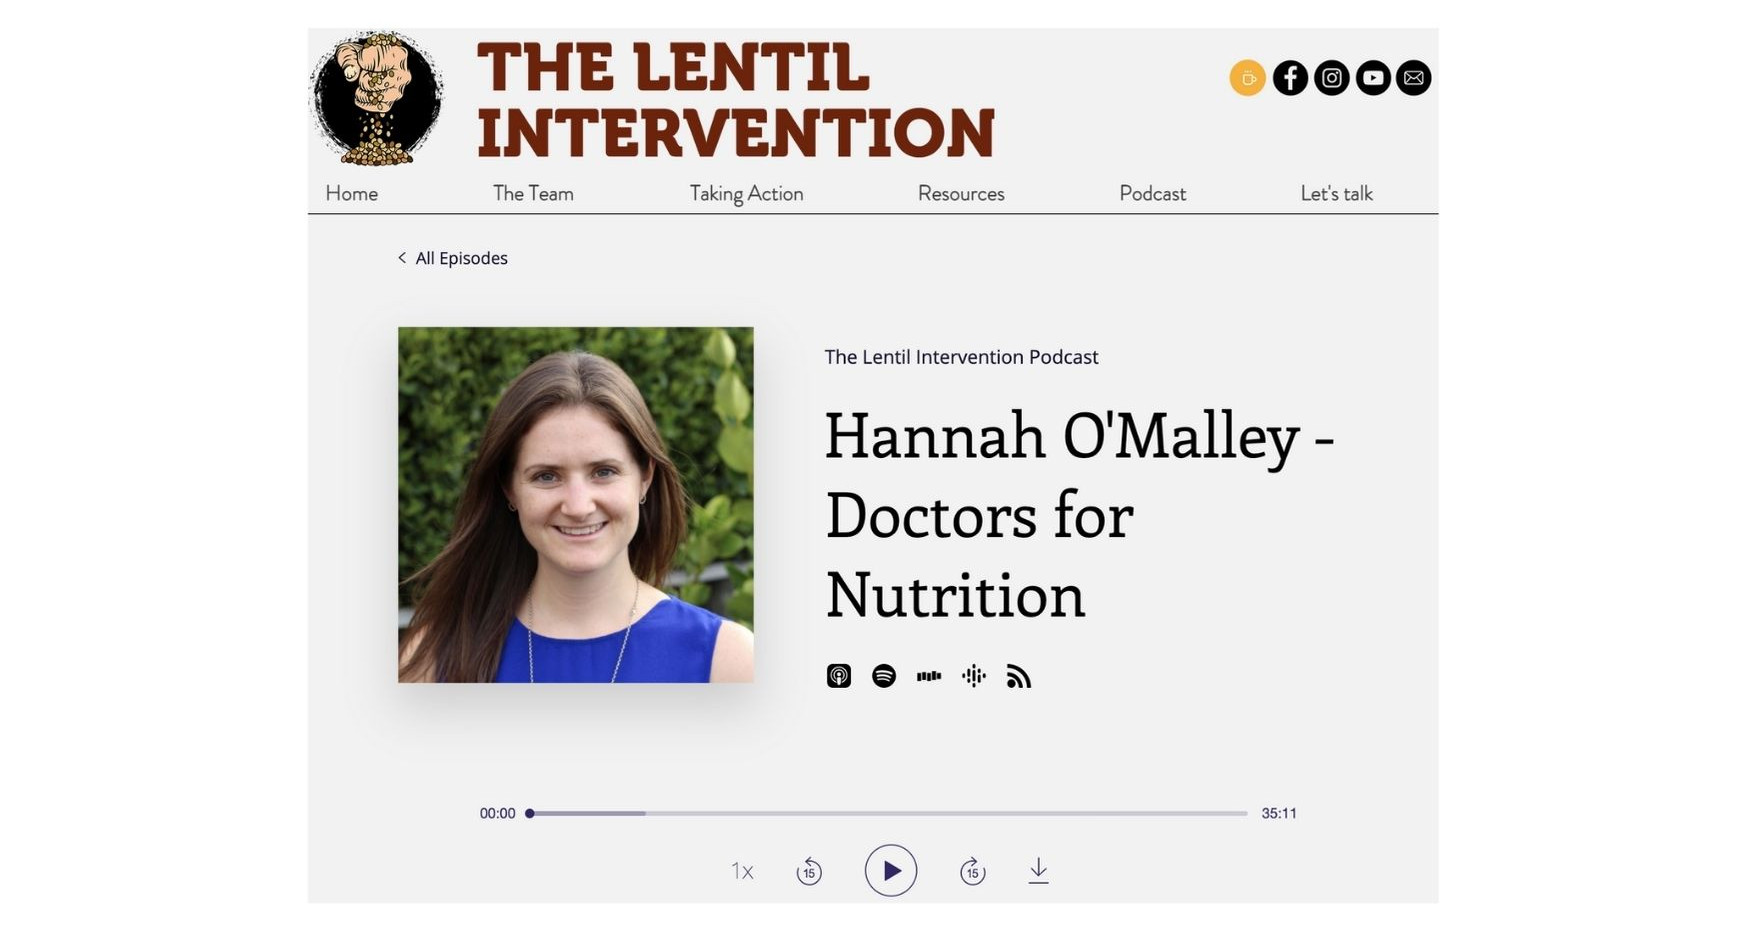 Lentil Intervention podcast, 1 March 2021